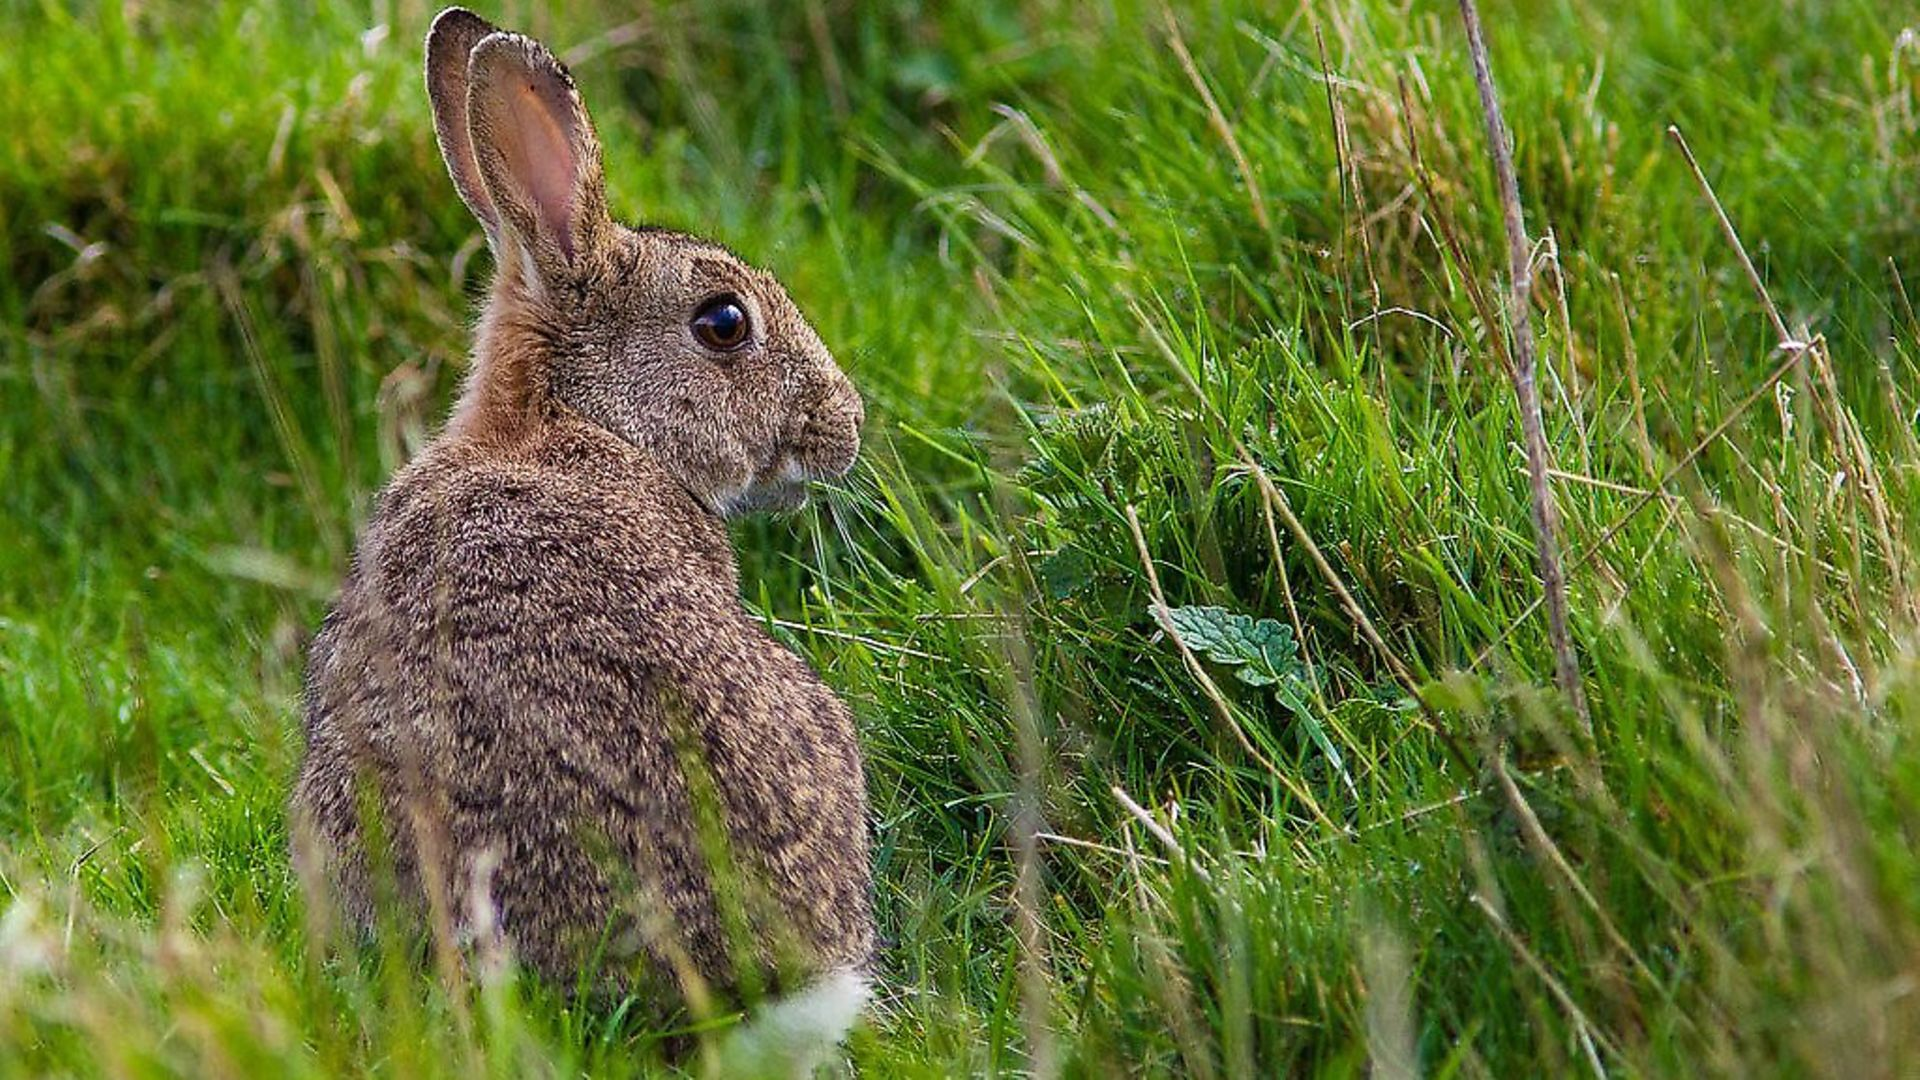 Maybe the country should start eating wild rabbits?. Picture: Natural England/Allan Drewitt - Credit: Natural England/Allan Drewitt